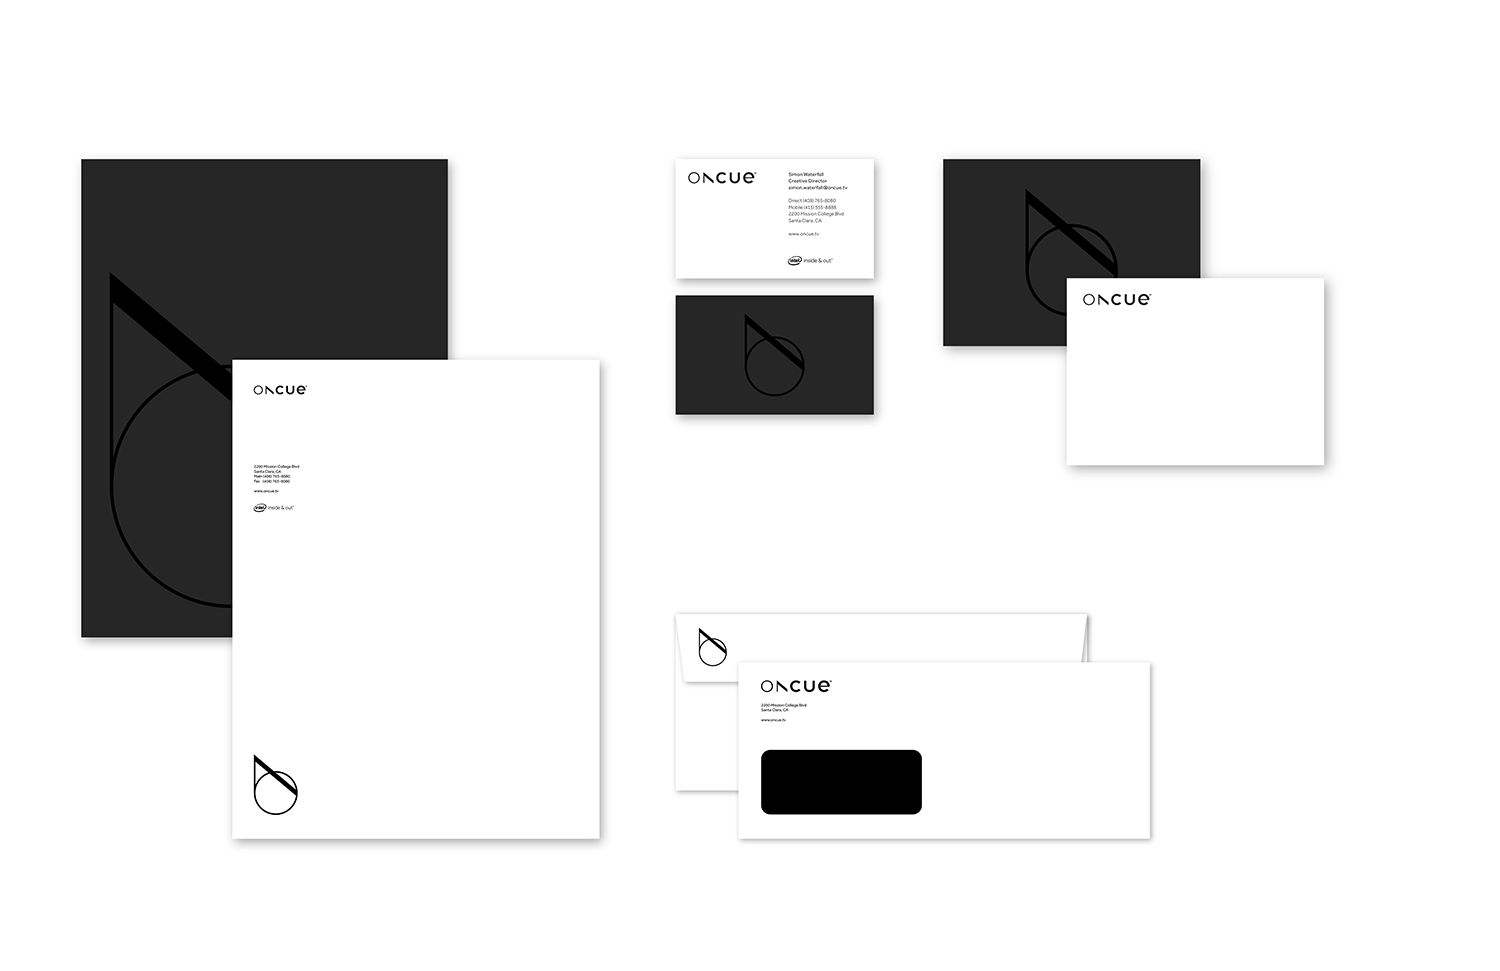 mchiao_oncue_02_stationery.png